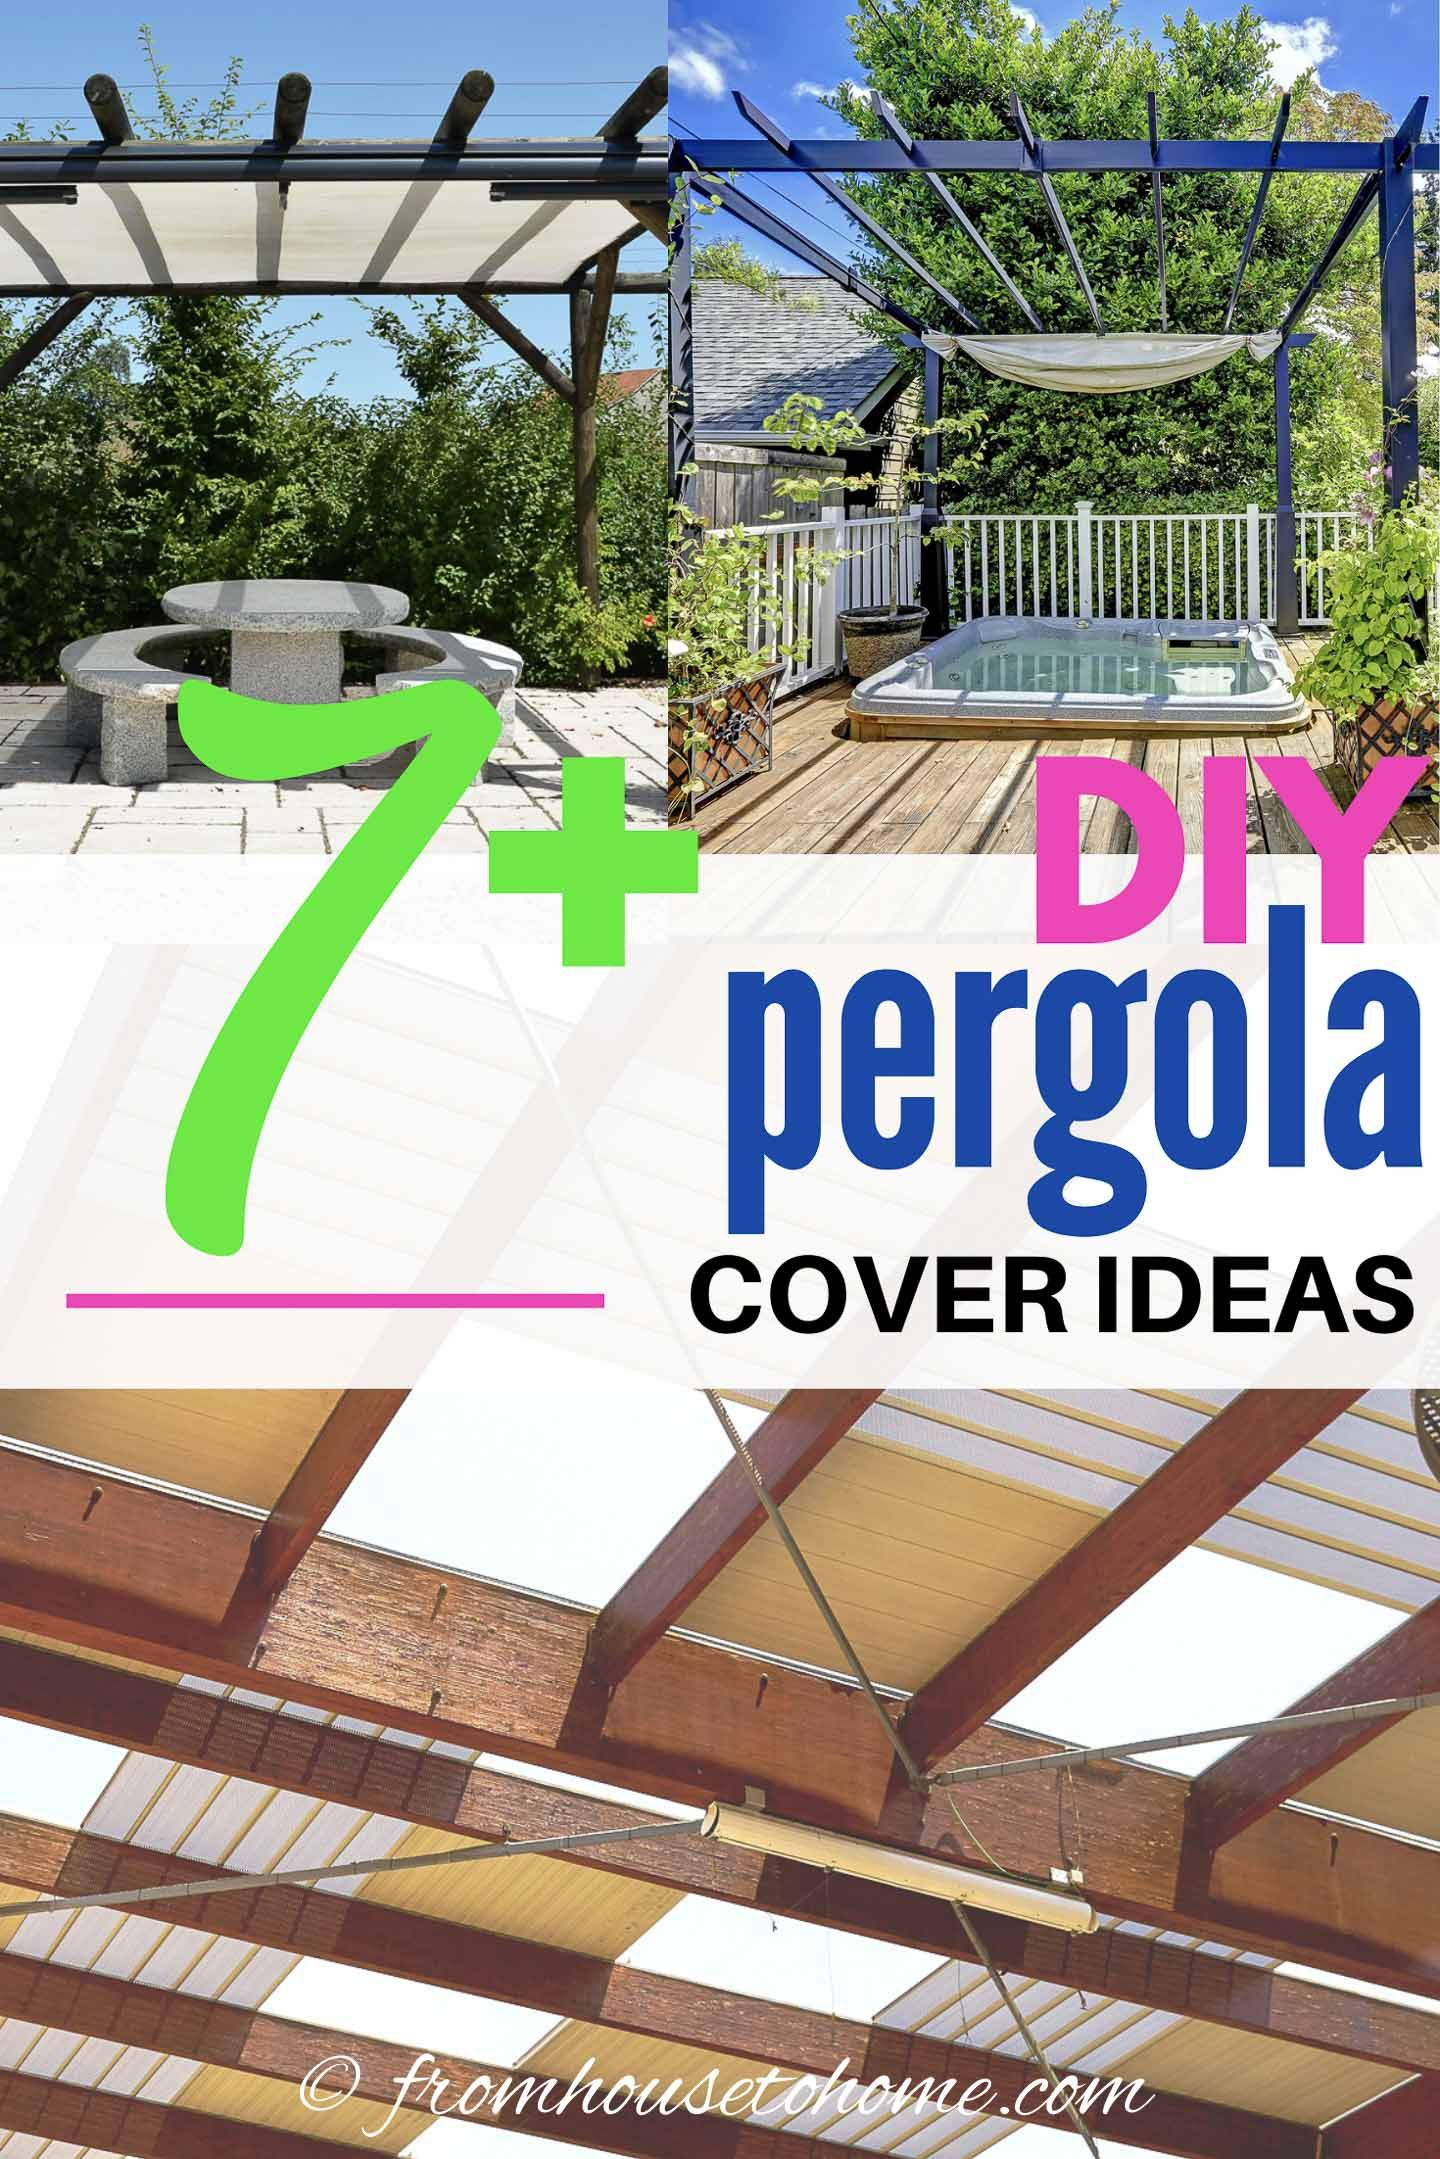 DIY Pergola Cover Ideas: 7 Ways To Protect Your Patio From ... on Patio Cover Ideas For Rain id=51325